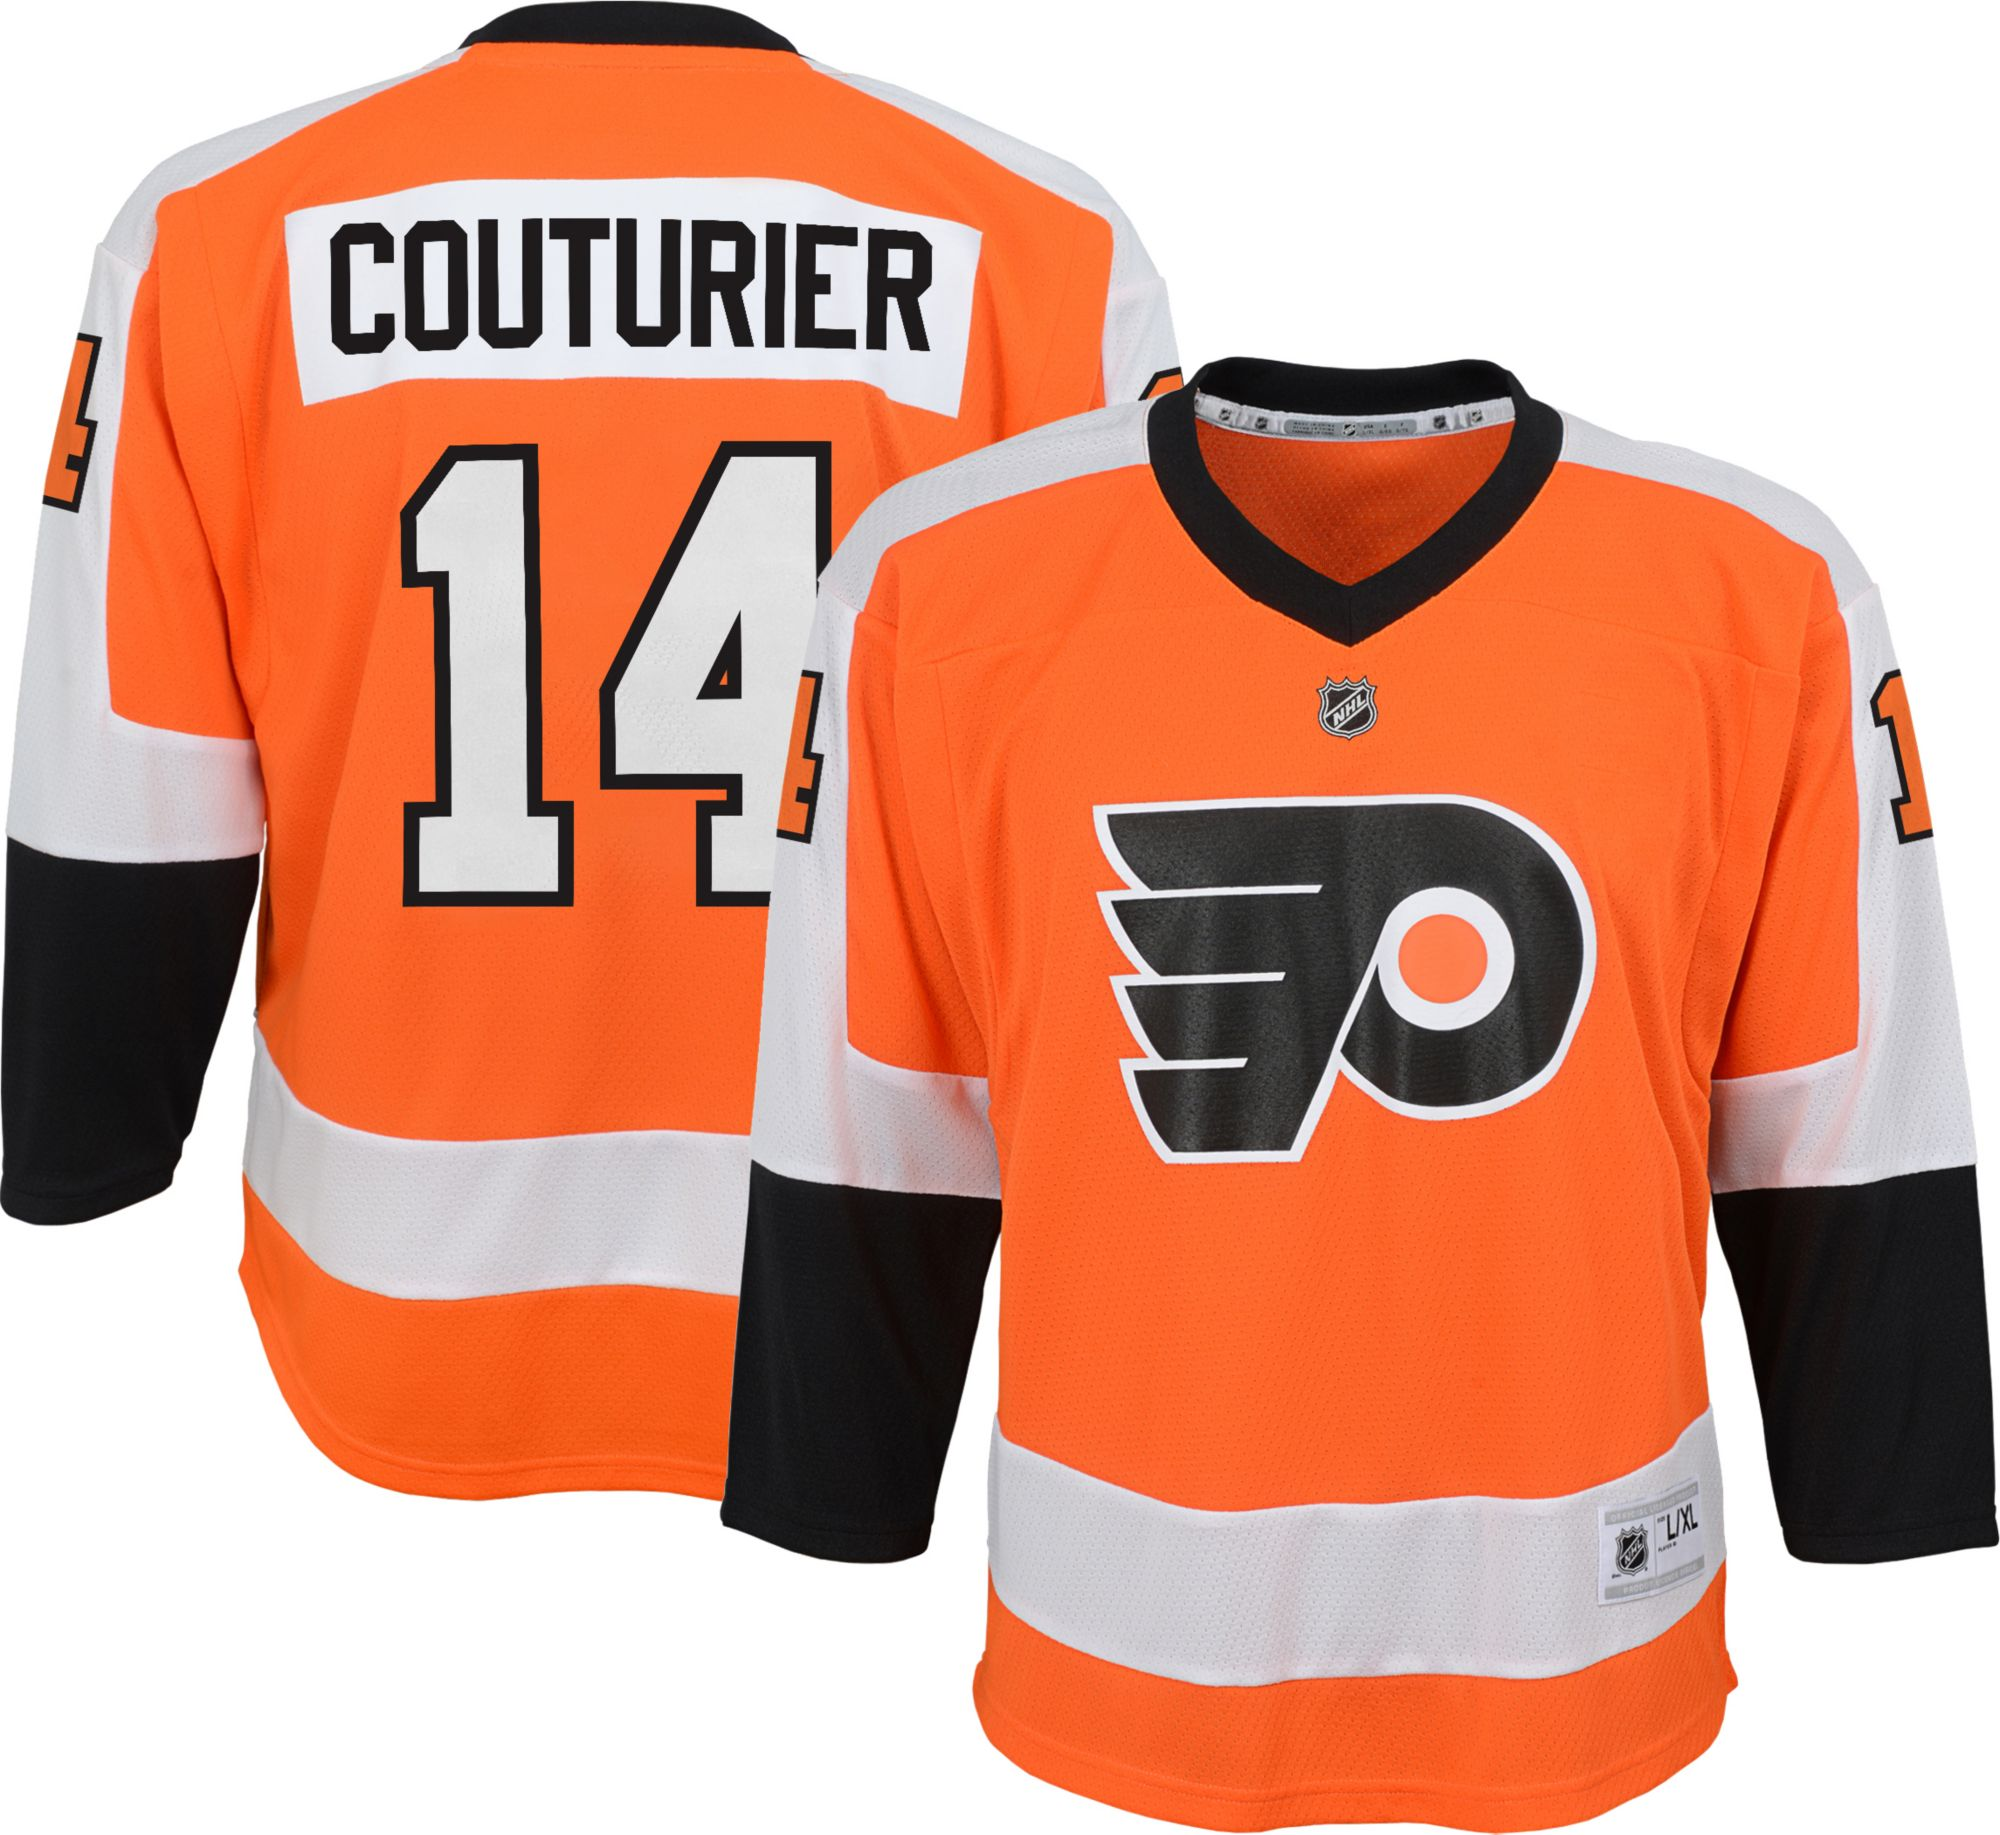 couturier jersey